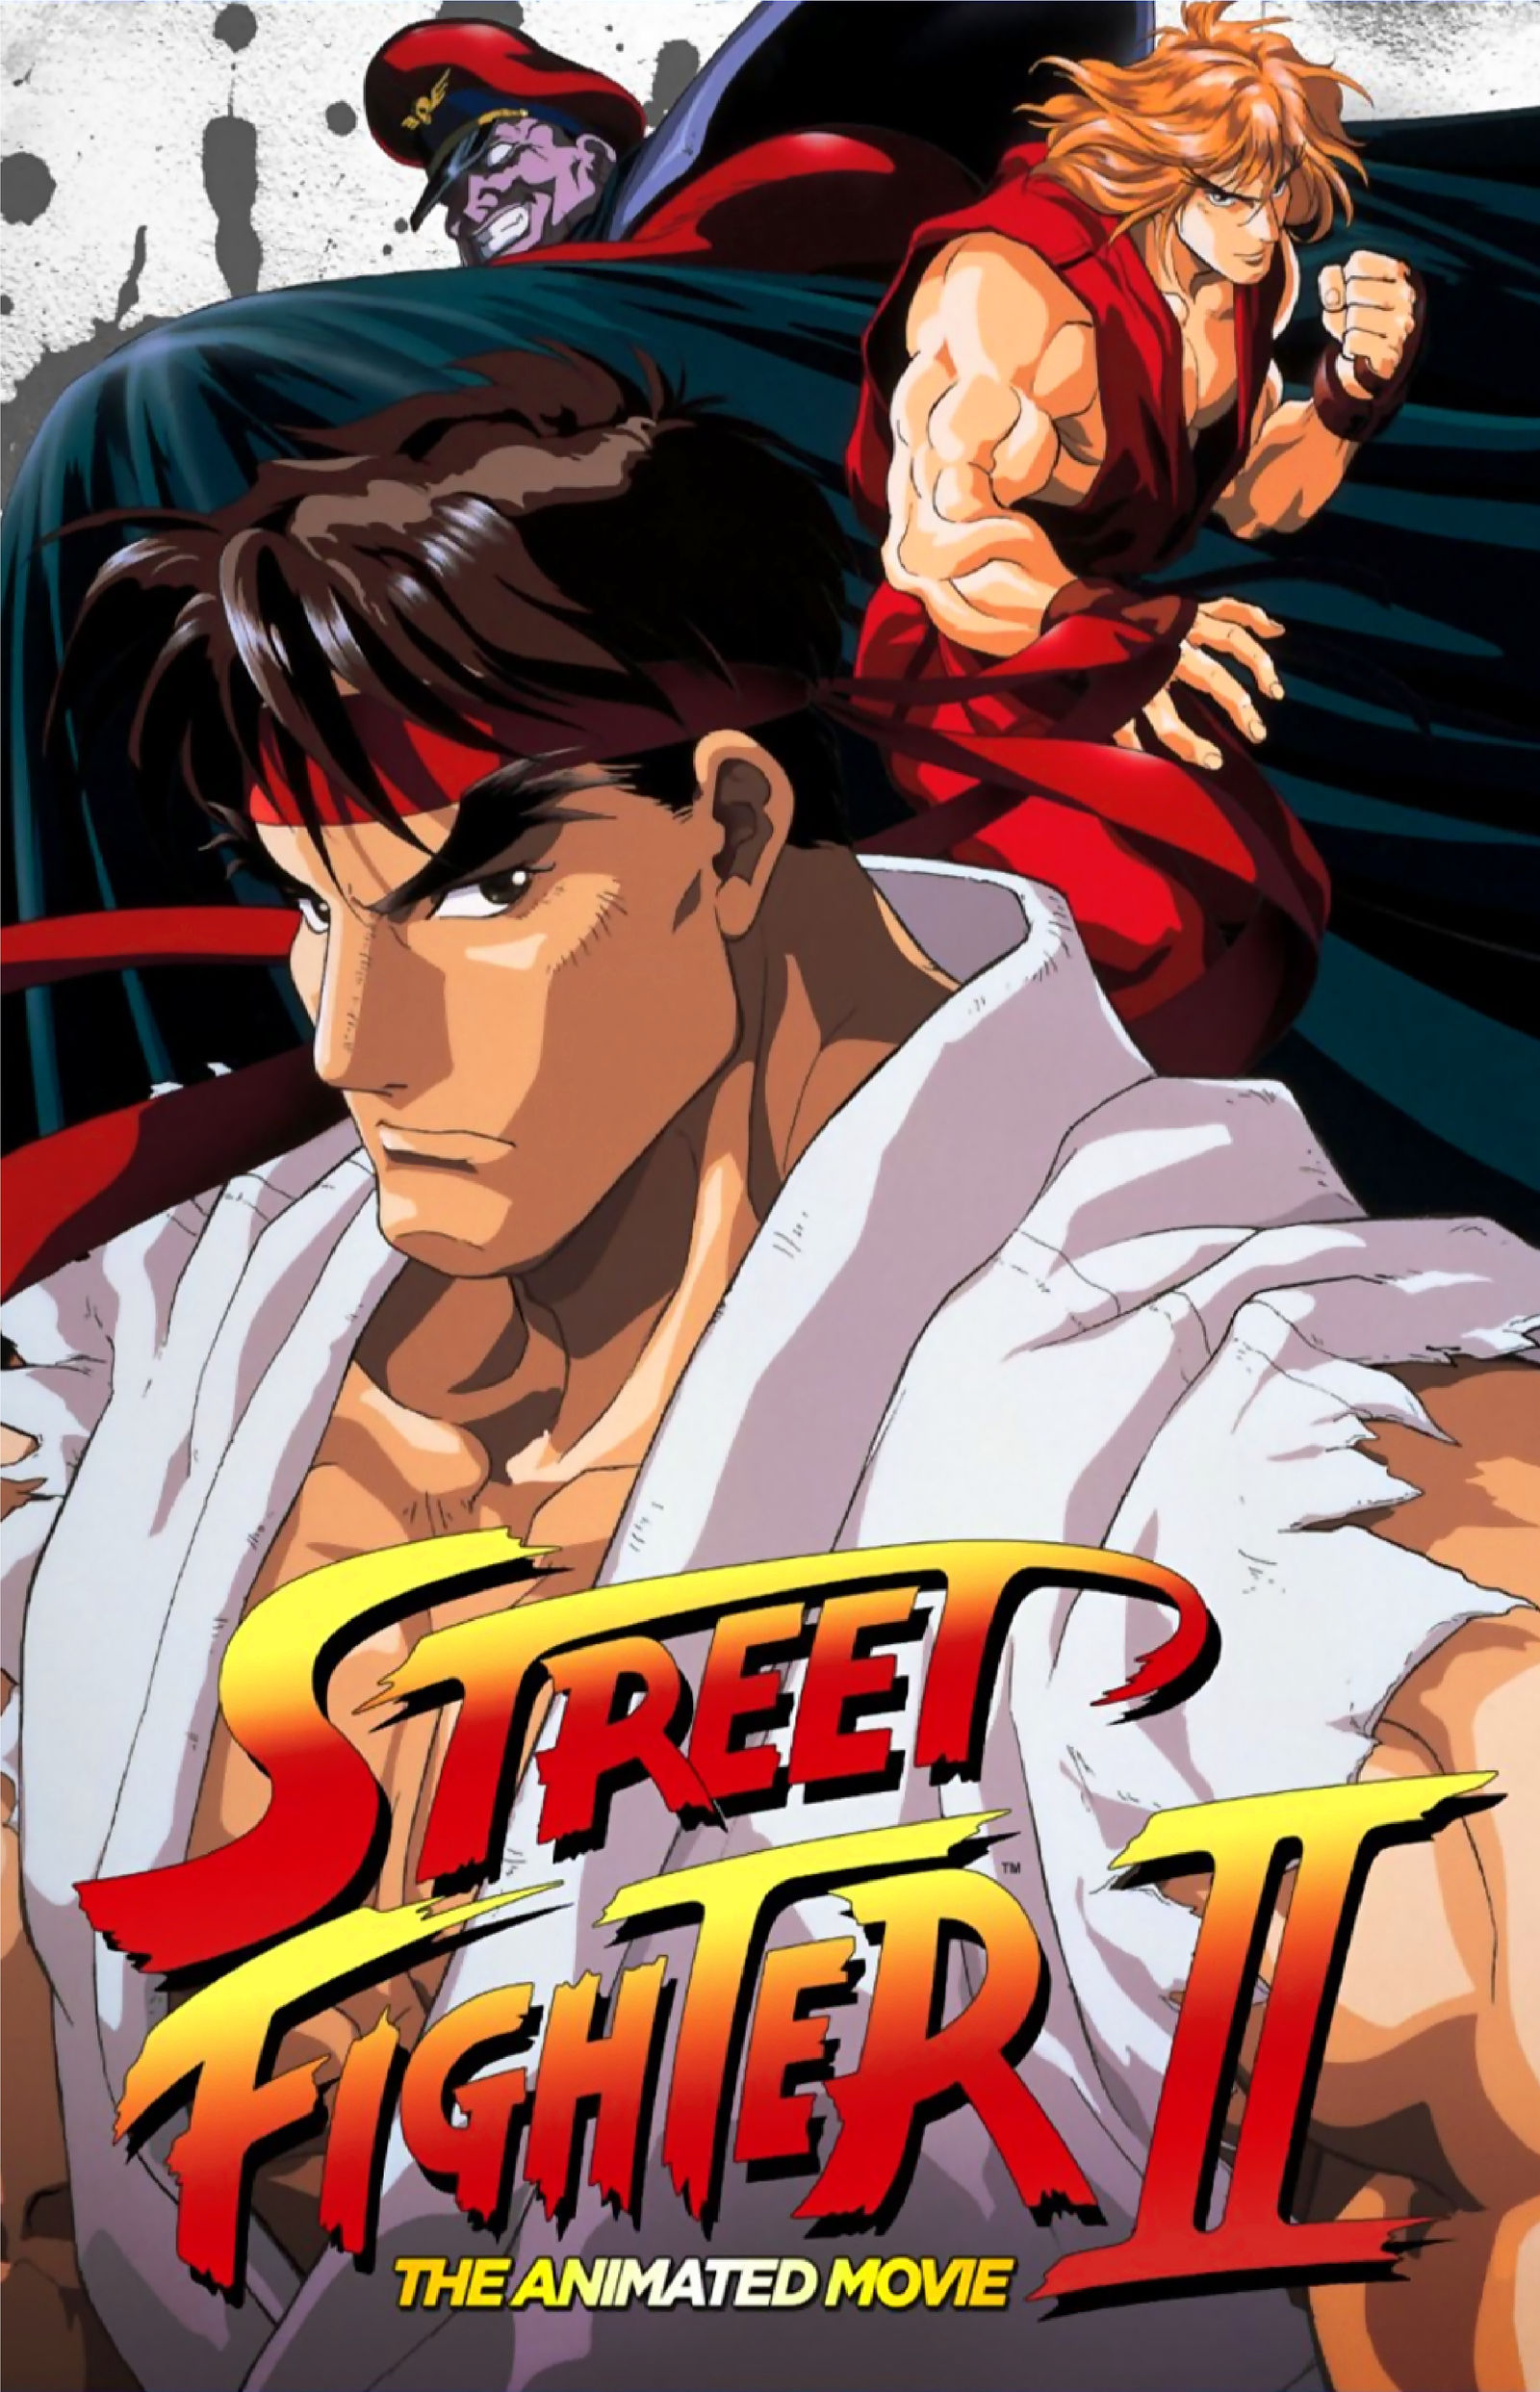 Street Fighter Ii The Animated Movie Poster By Leivbjerga On Deviantart